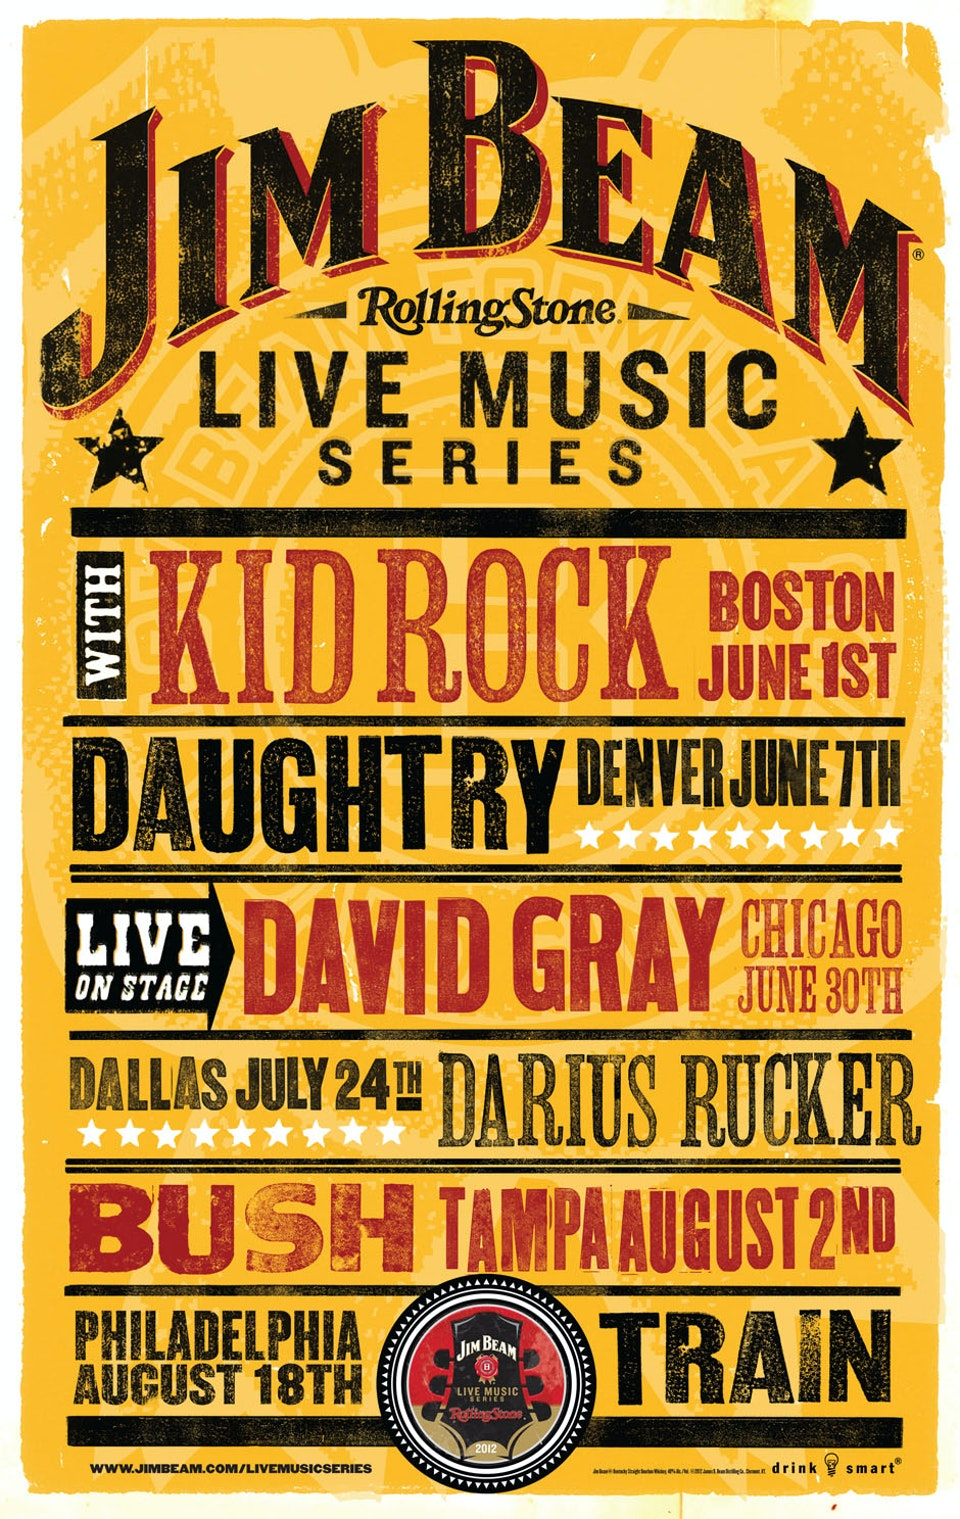 Jim Beam Concert Series Poster - Final poster